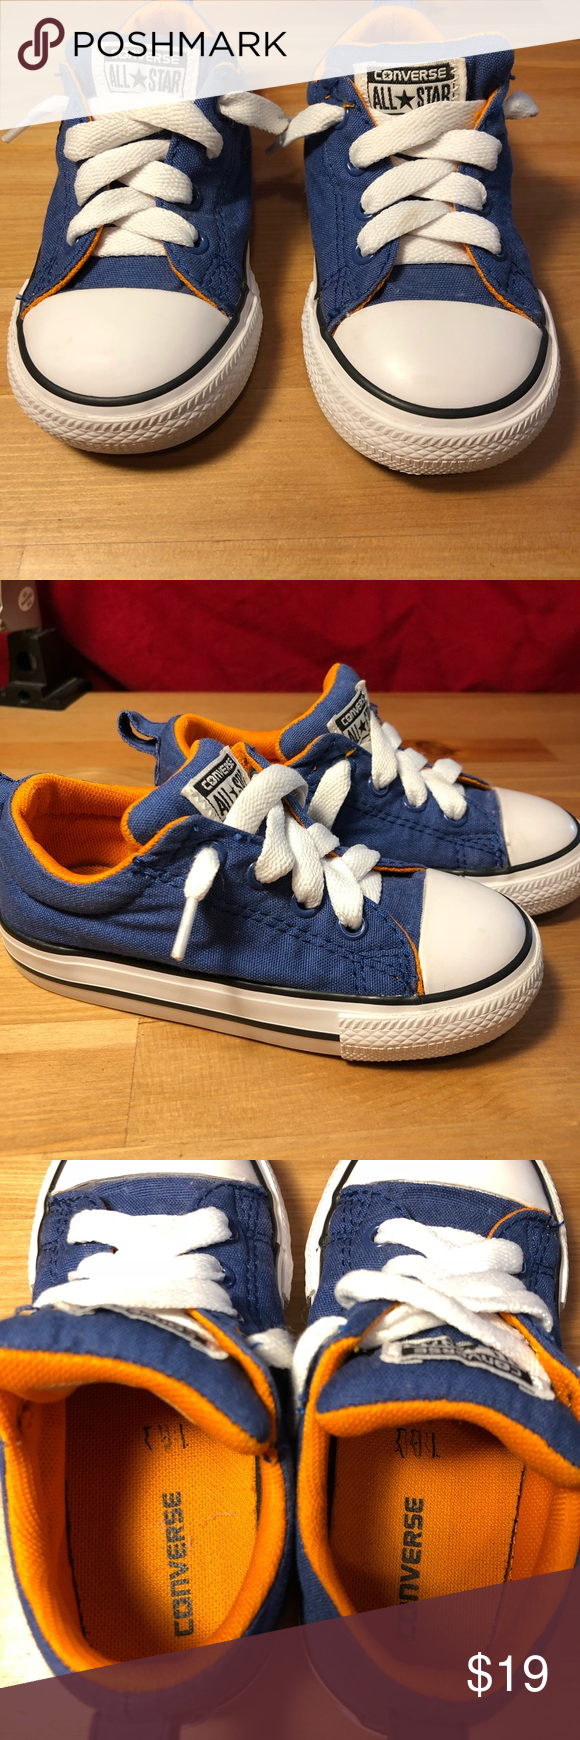 025eaba36227 Boys toddler converse size 8 Blue converse with orange lining and soles In  good condition like new